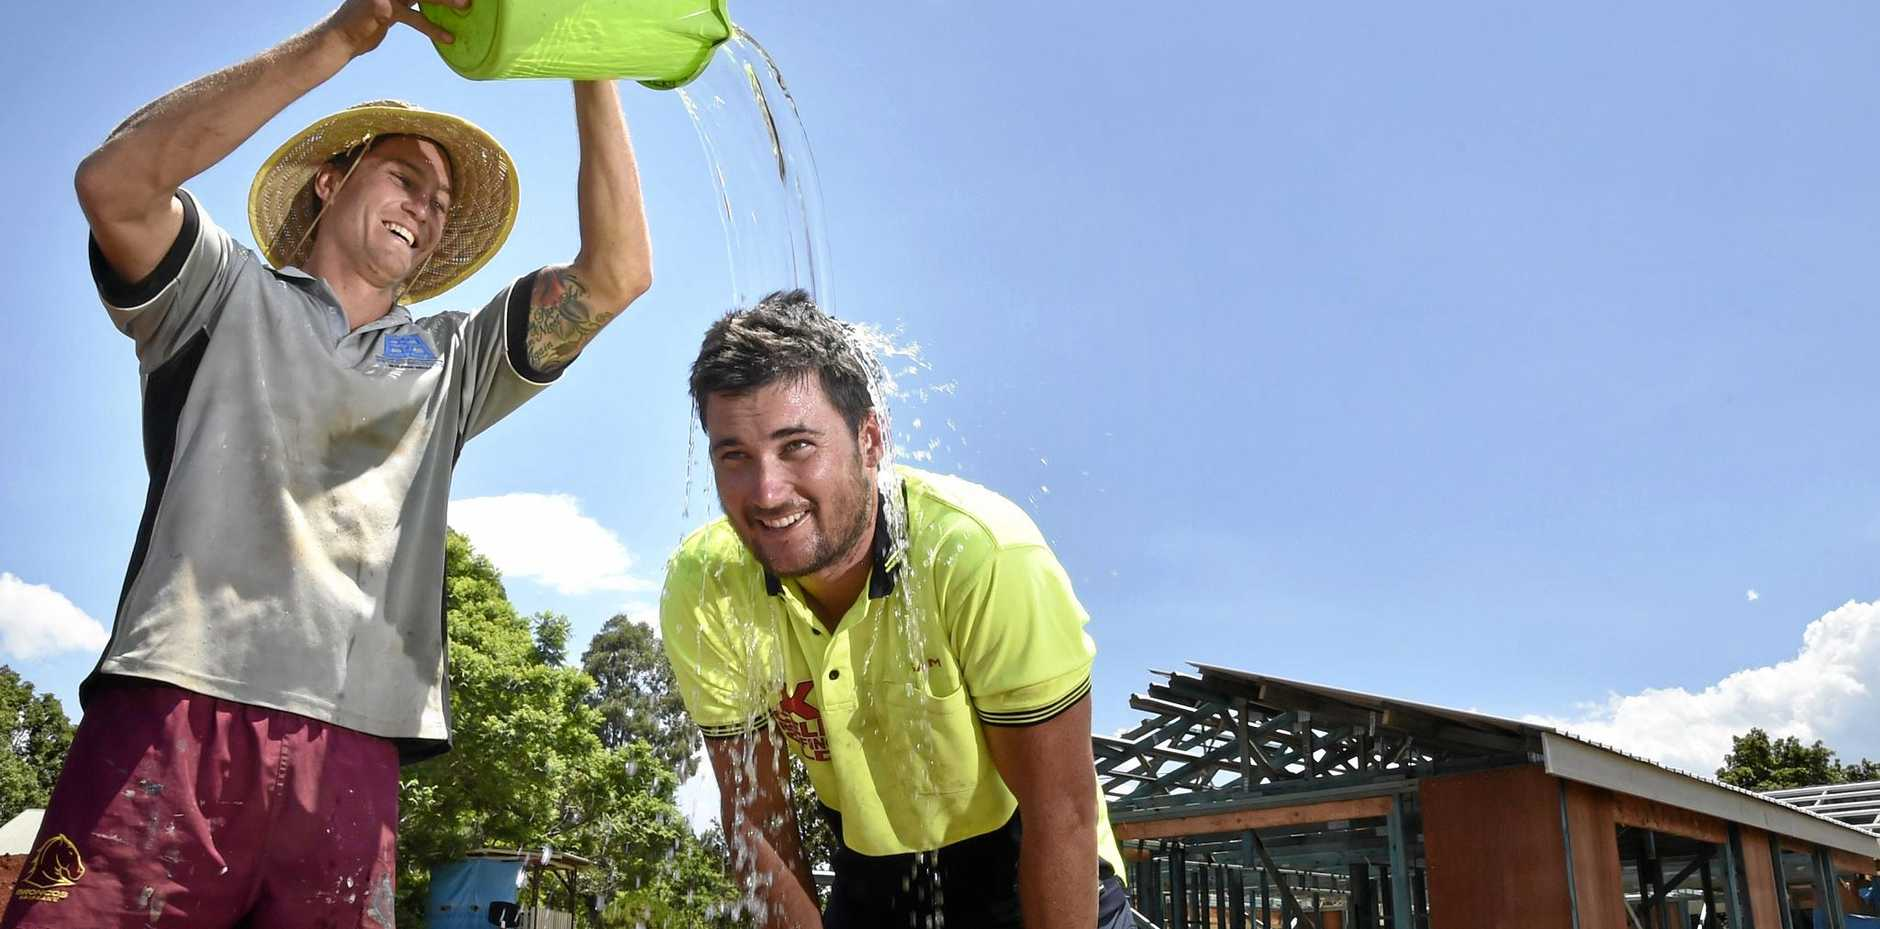 HEAT WAVE: Everyone has their own unique way of coping with above average summer heat,. Tradies Matthew Bryant (left) and Sam Finn found a simple, quick method to cool down.